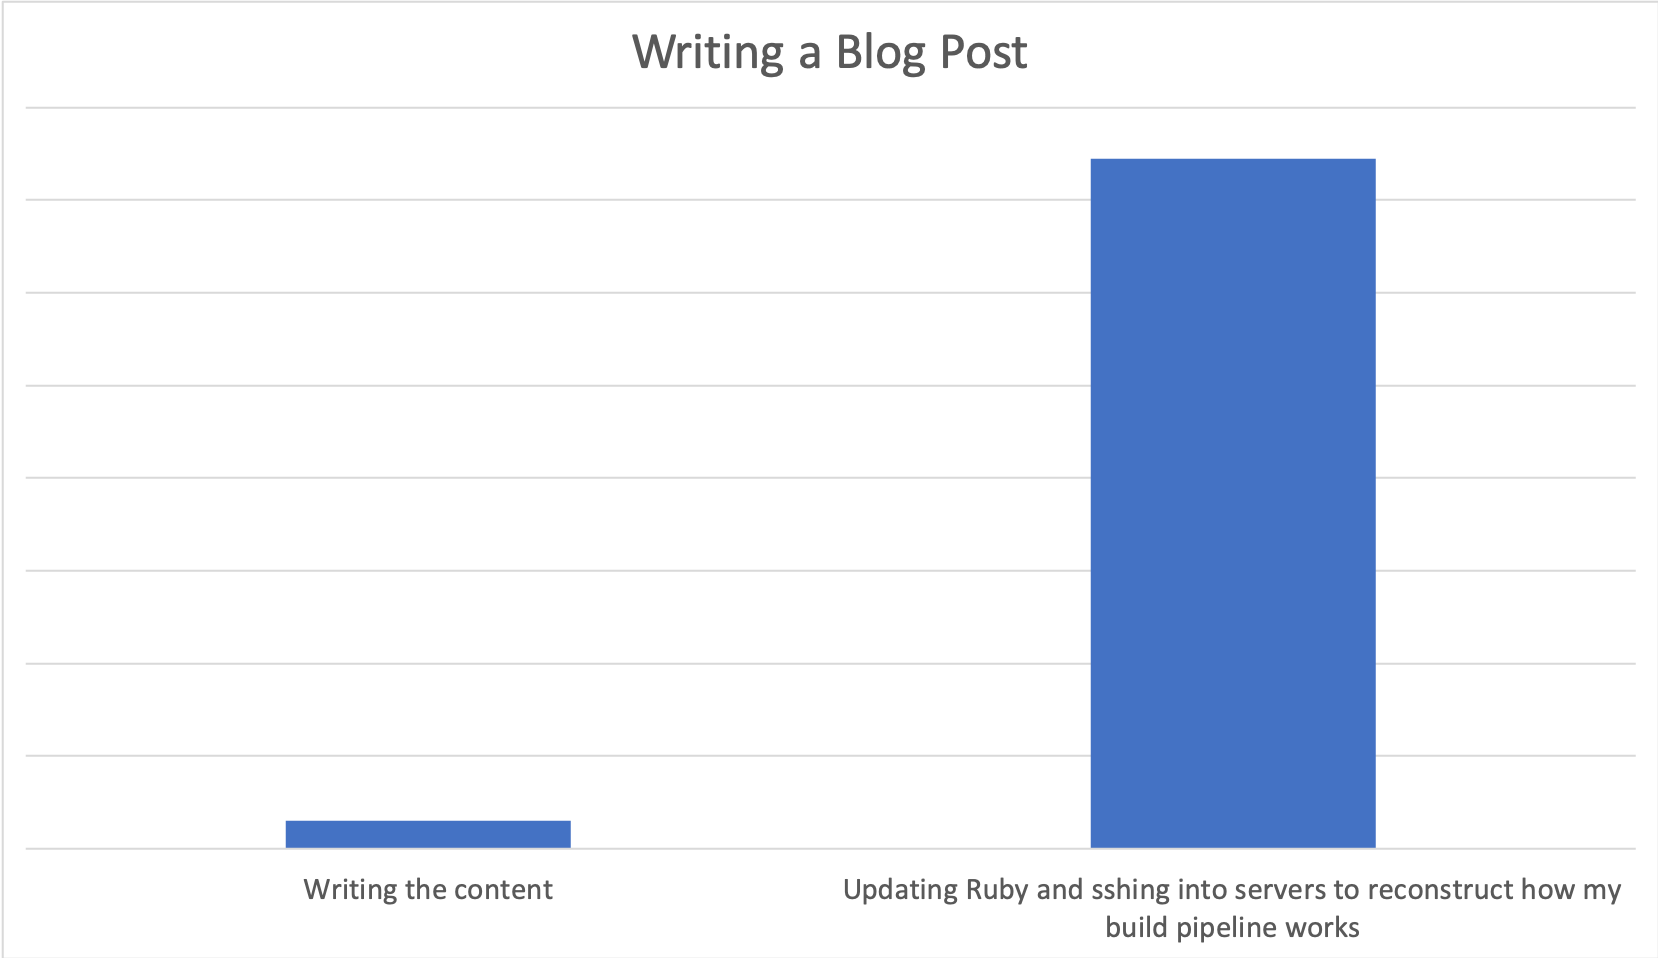 Chart of time spent on blogging activities